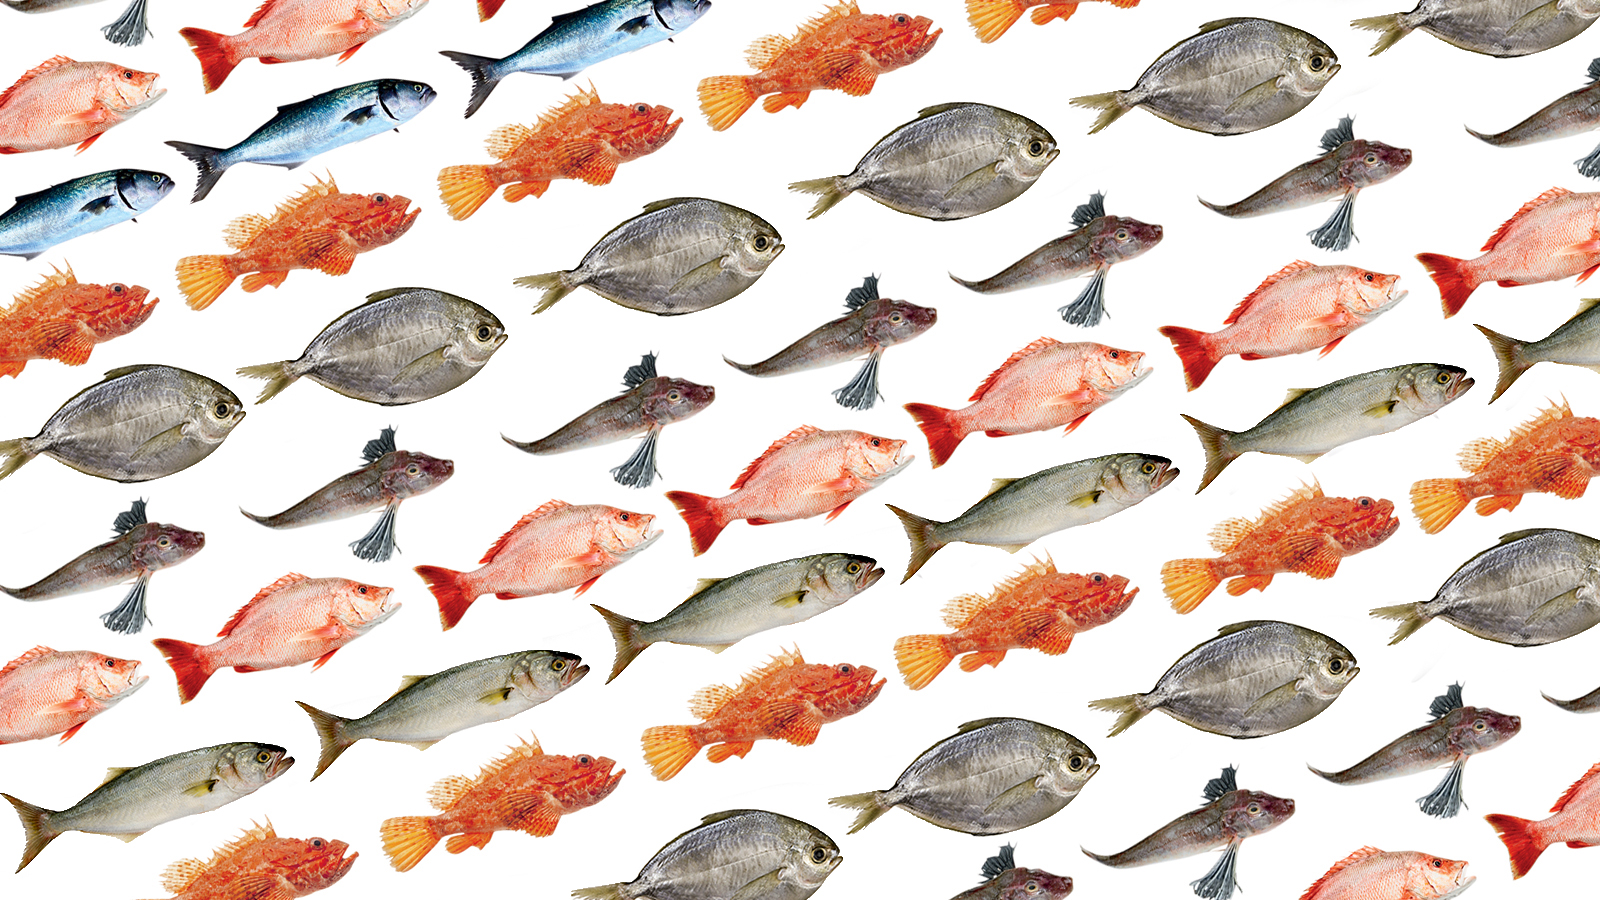 Buy the Best Sustainable Fish